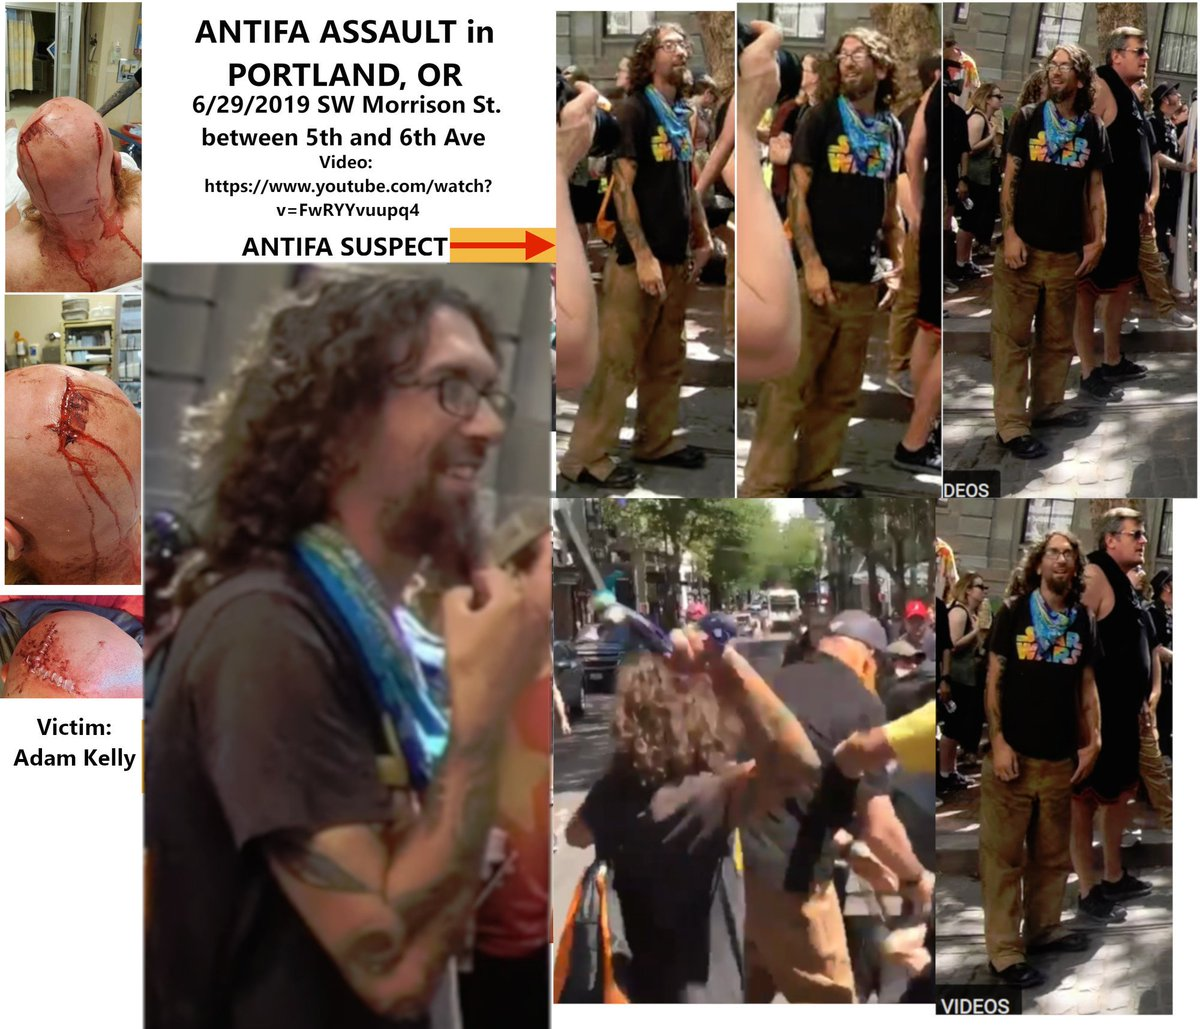 🚨🚨🚨 Suspect ID'd🚨🚨🚨 [Joseph Christian Evans] Seen during Portland #Antifa Riot Assaulting Adam Kelly over the head with a metal pipe sending him to the Emergency Room